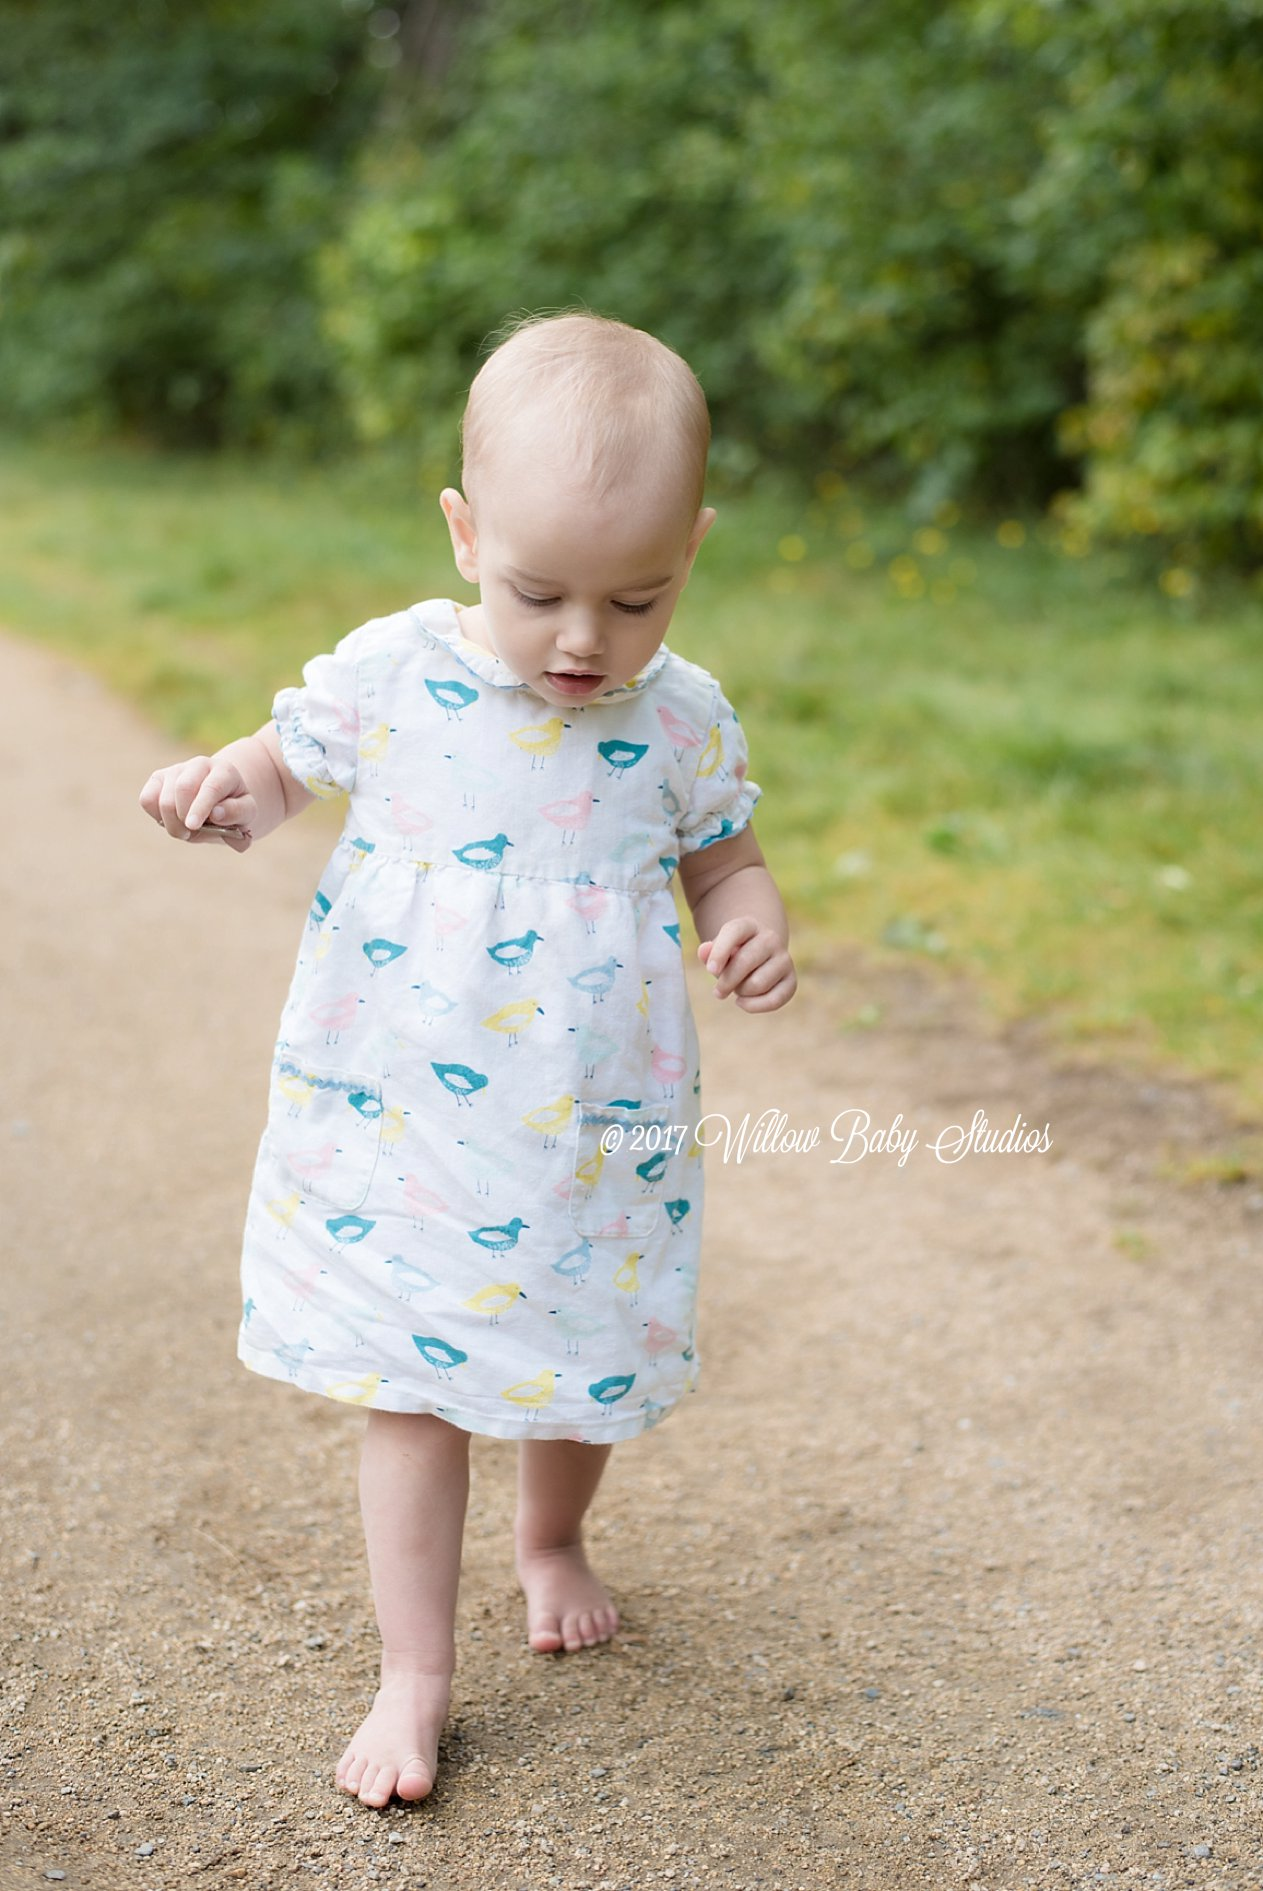 toddler walking on a dirt path